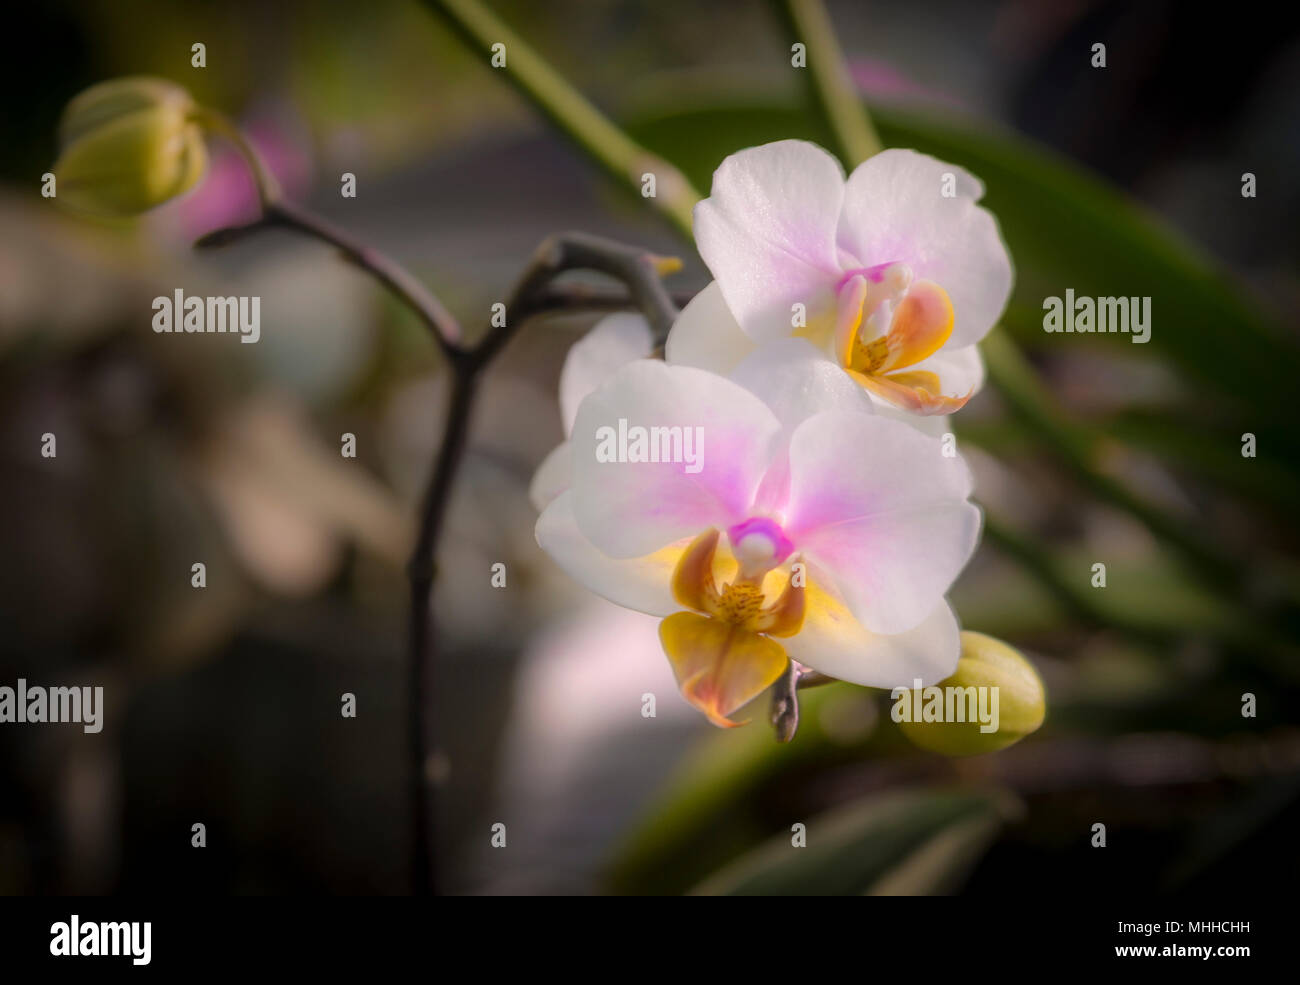 White Orchid Flower - Stock Image